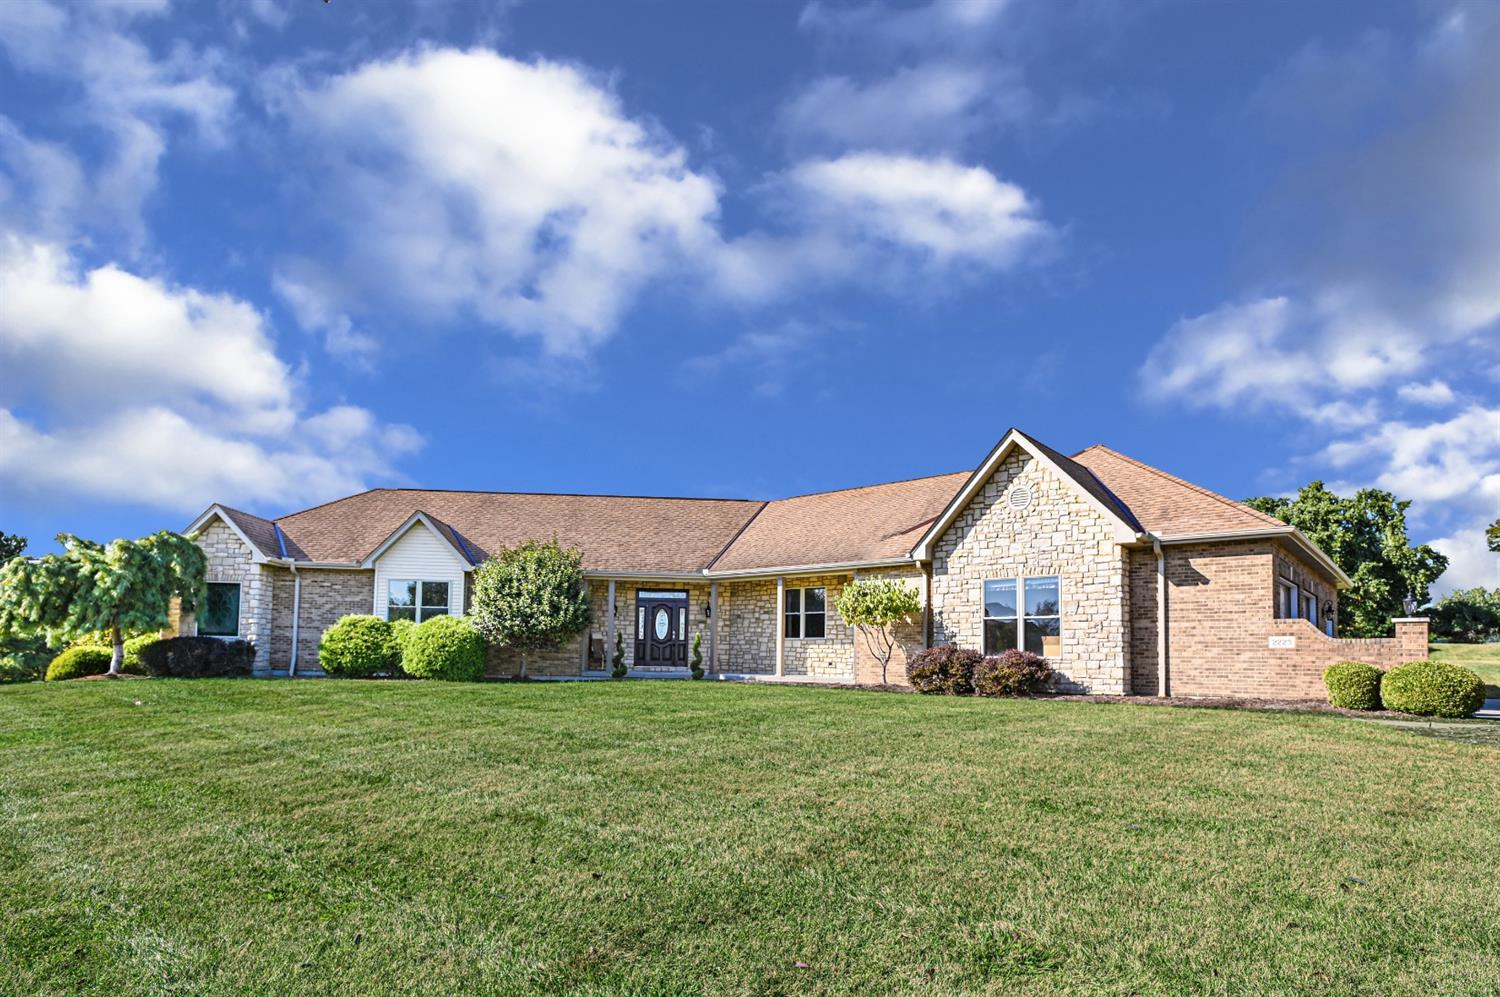 2225 Quail Run Farm Ln Green Twp. - Hamilton Co., OH